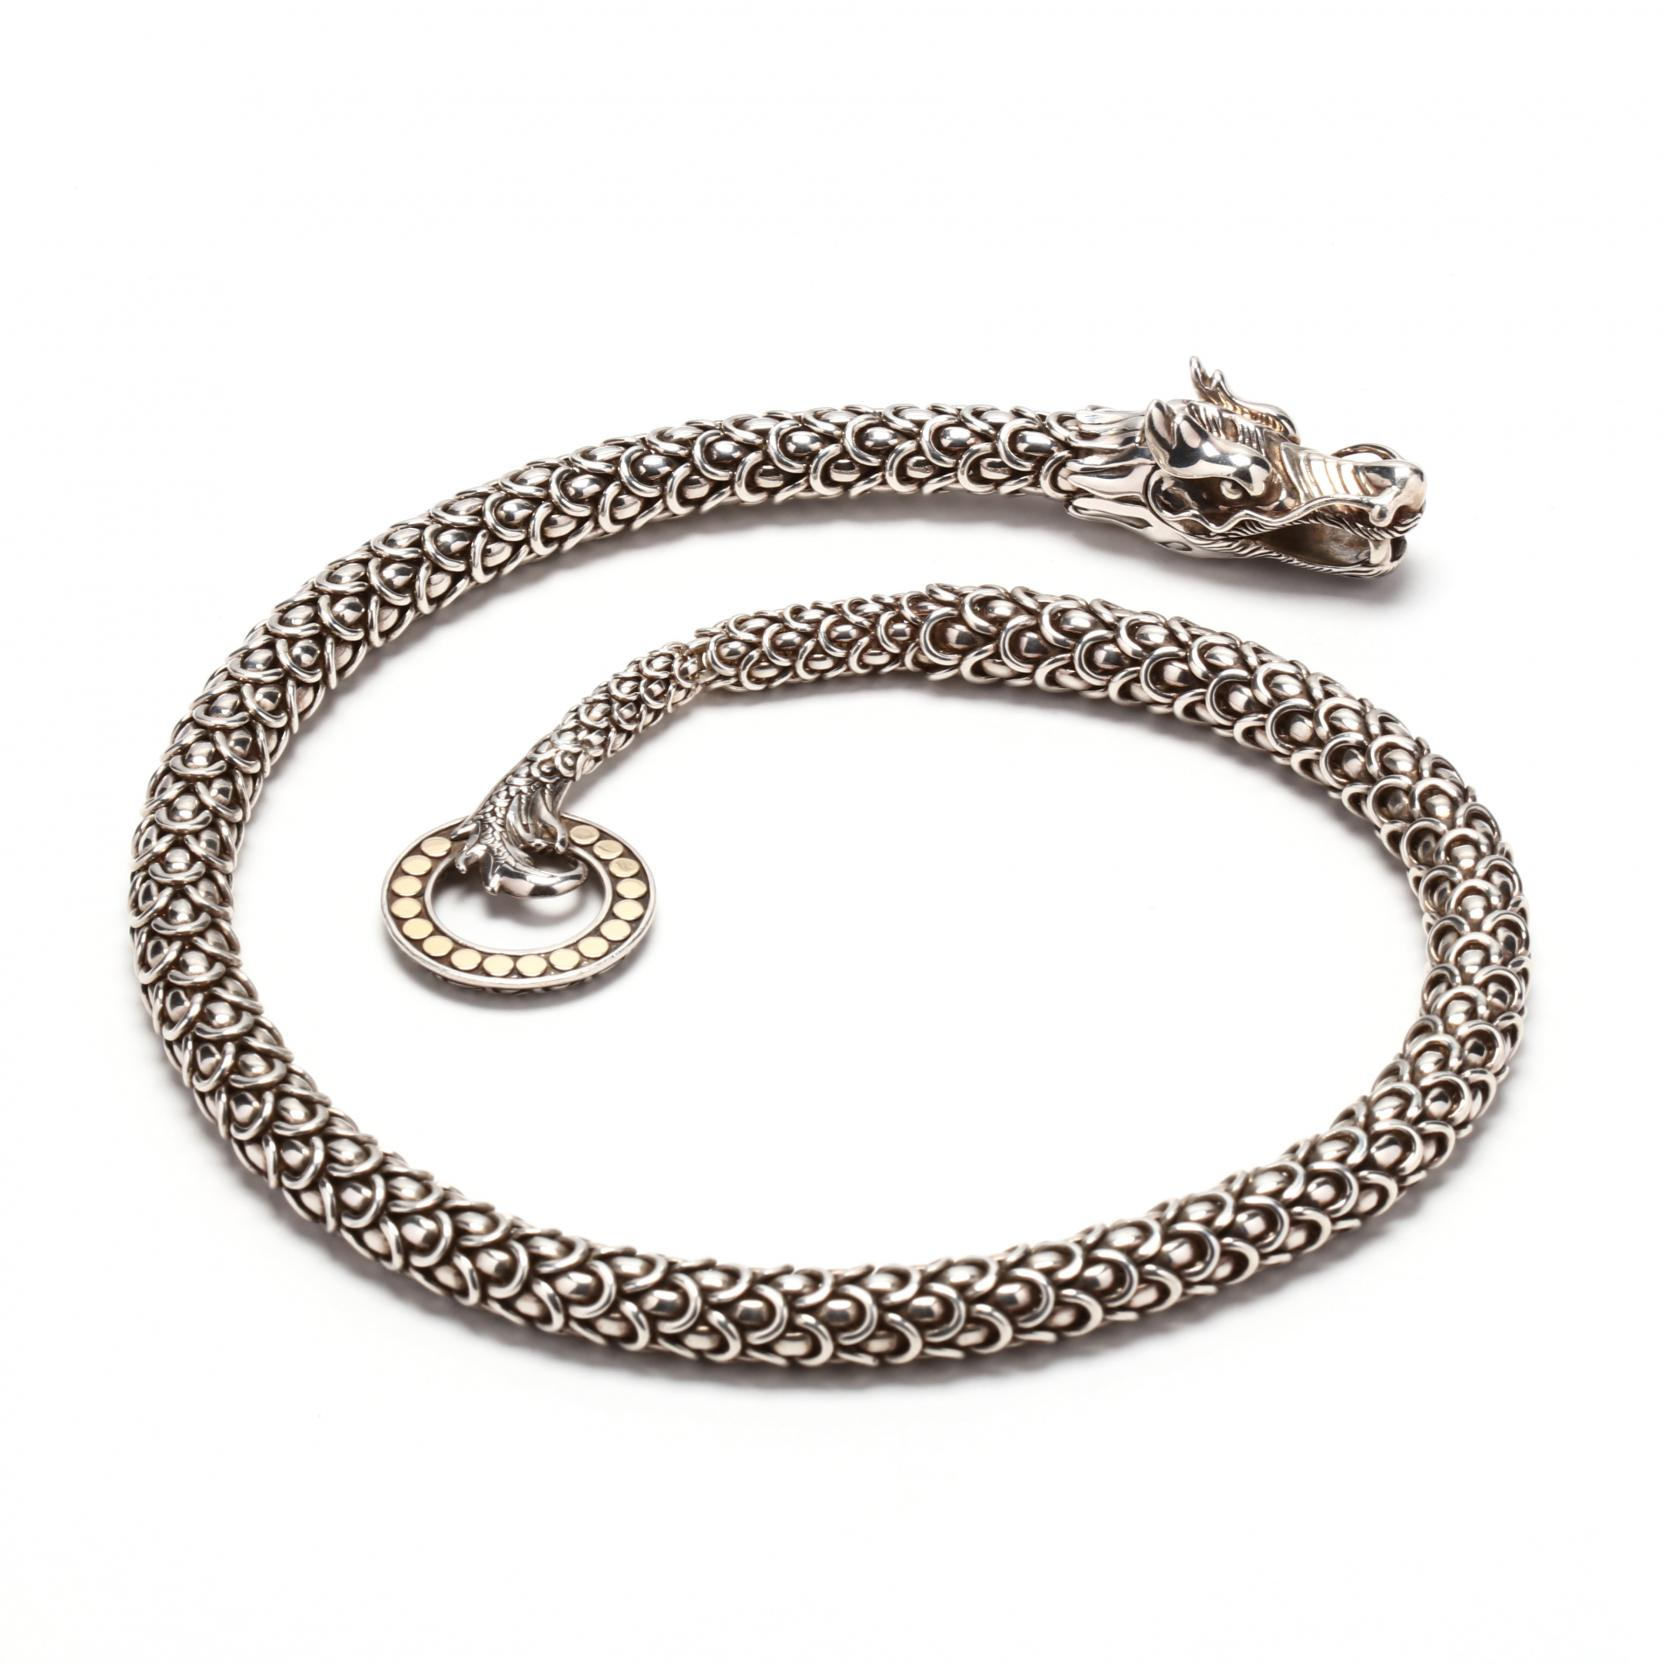 18kt-gold-and-sterling-silver-naga-dragon-necklace-john-hardy